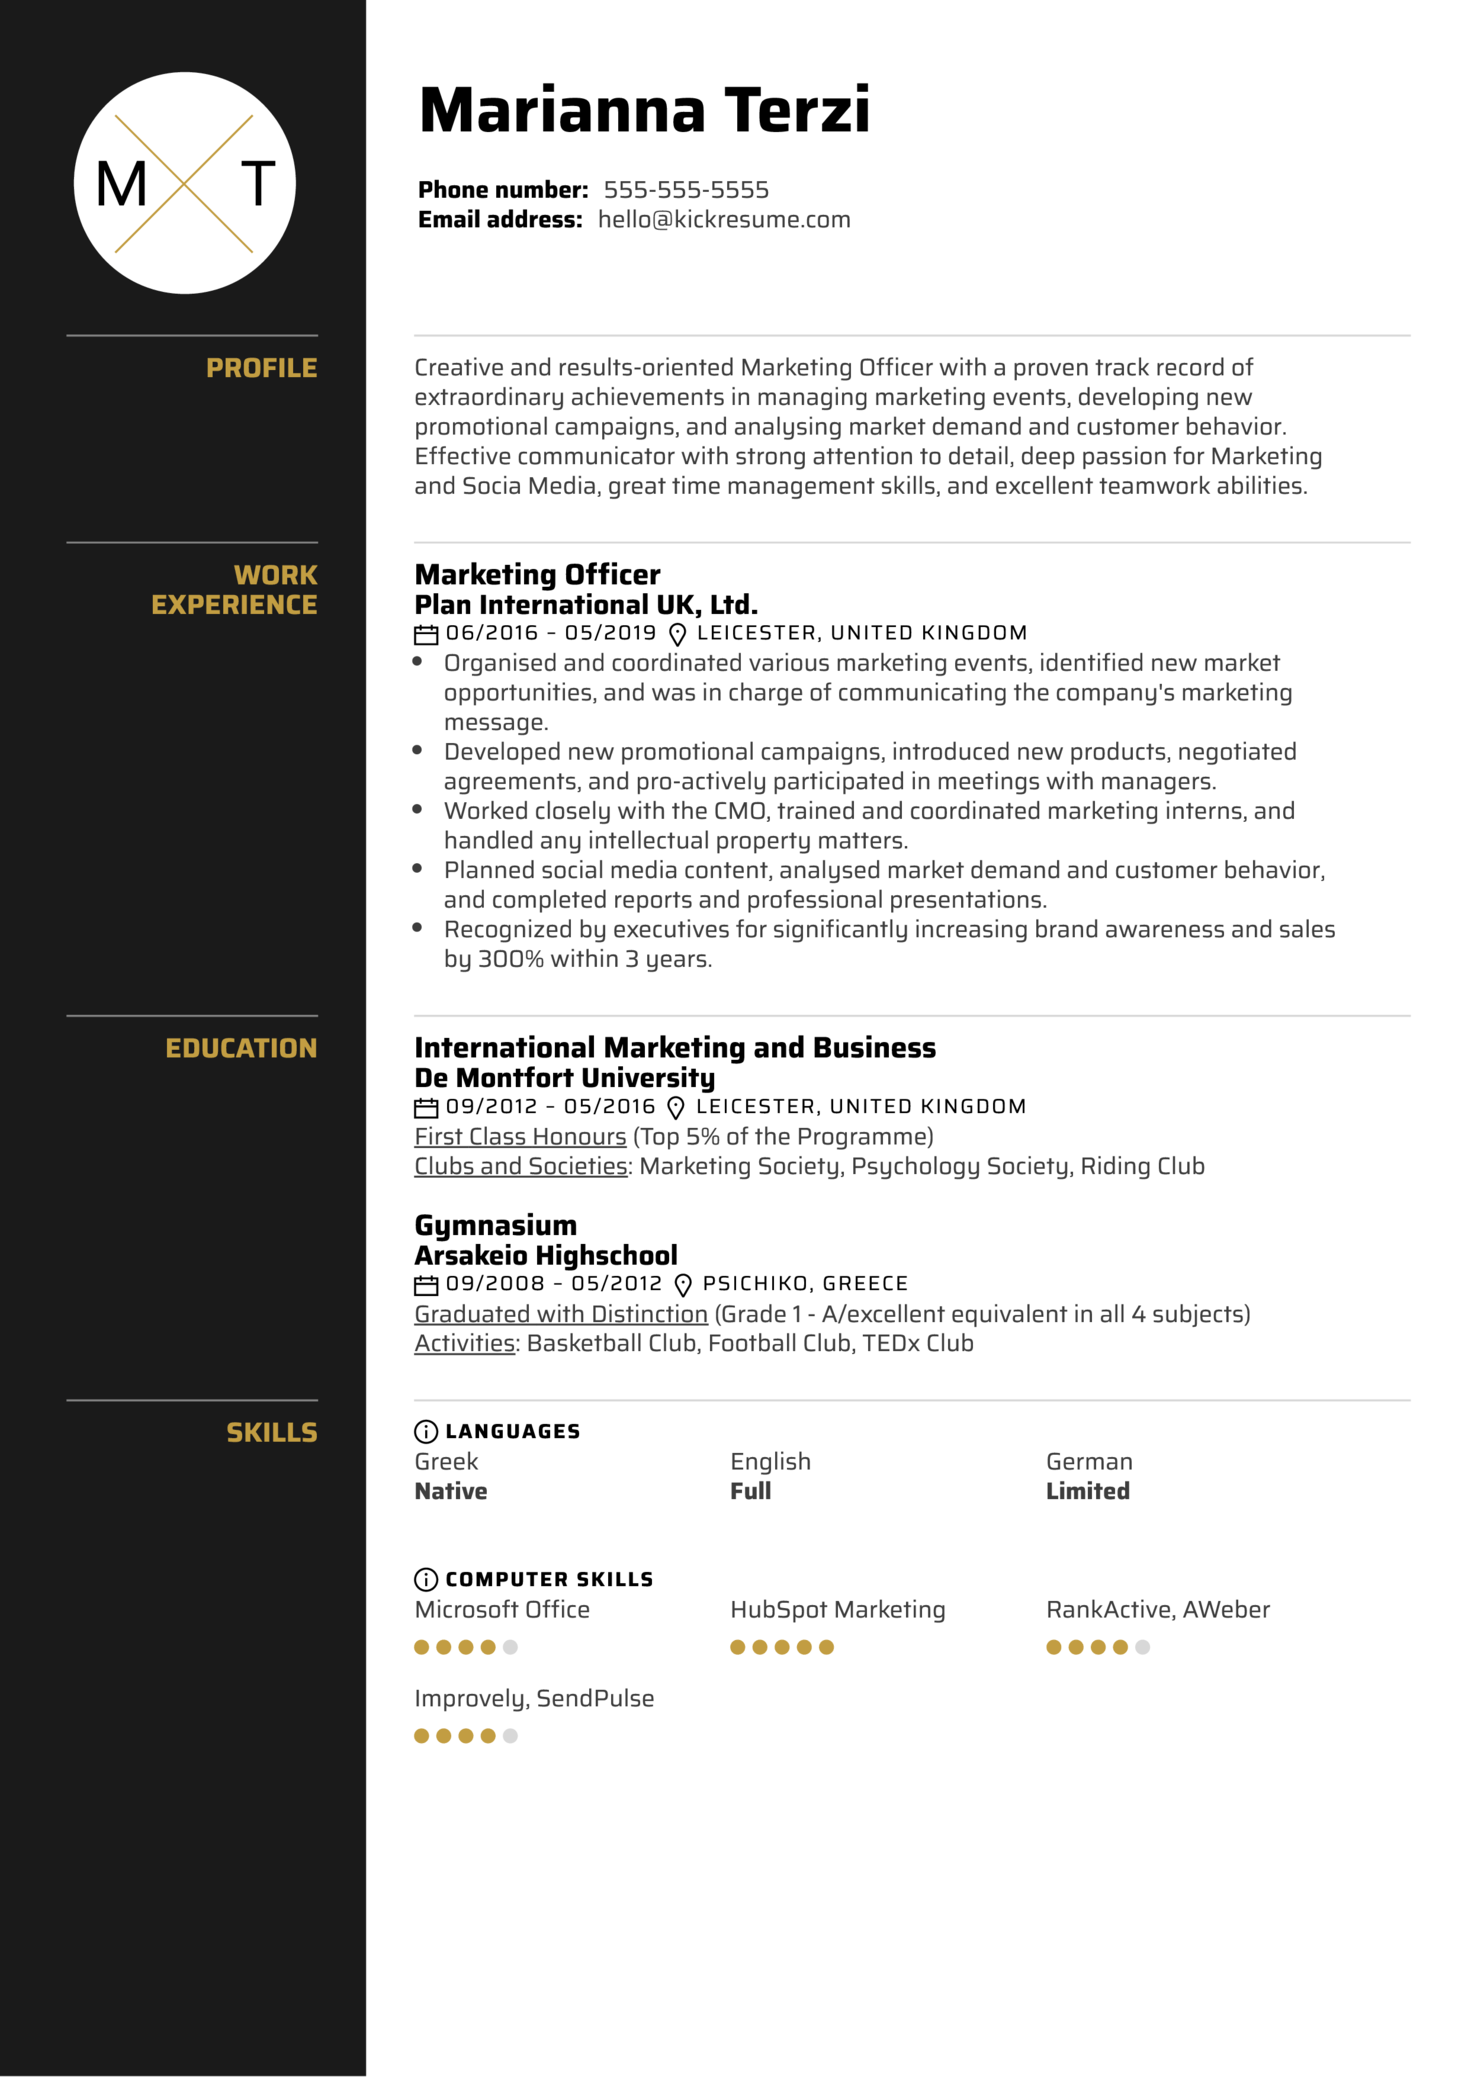 Marketing Officer Resume Sample Kickresume